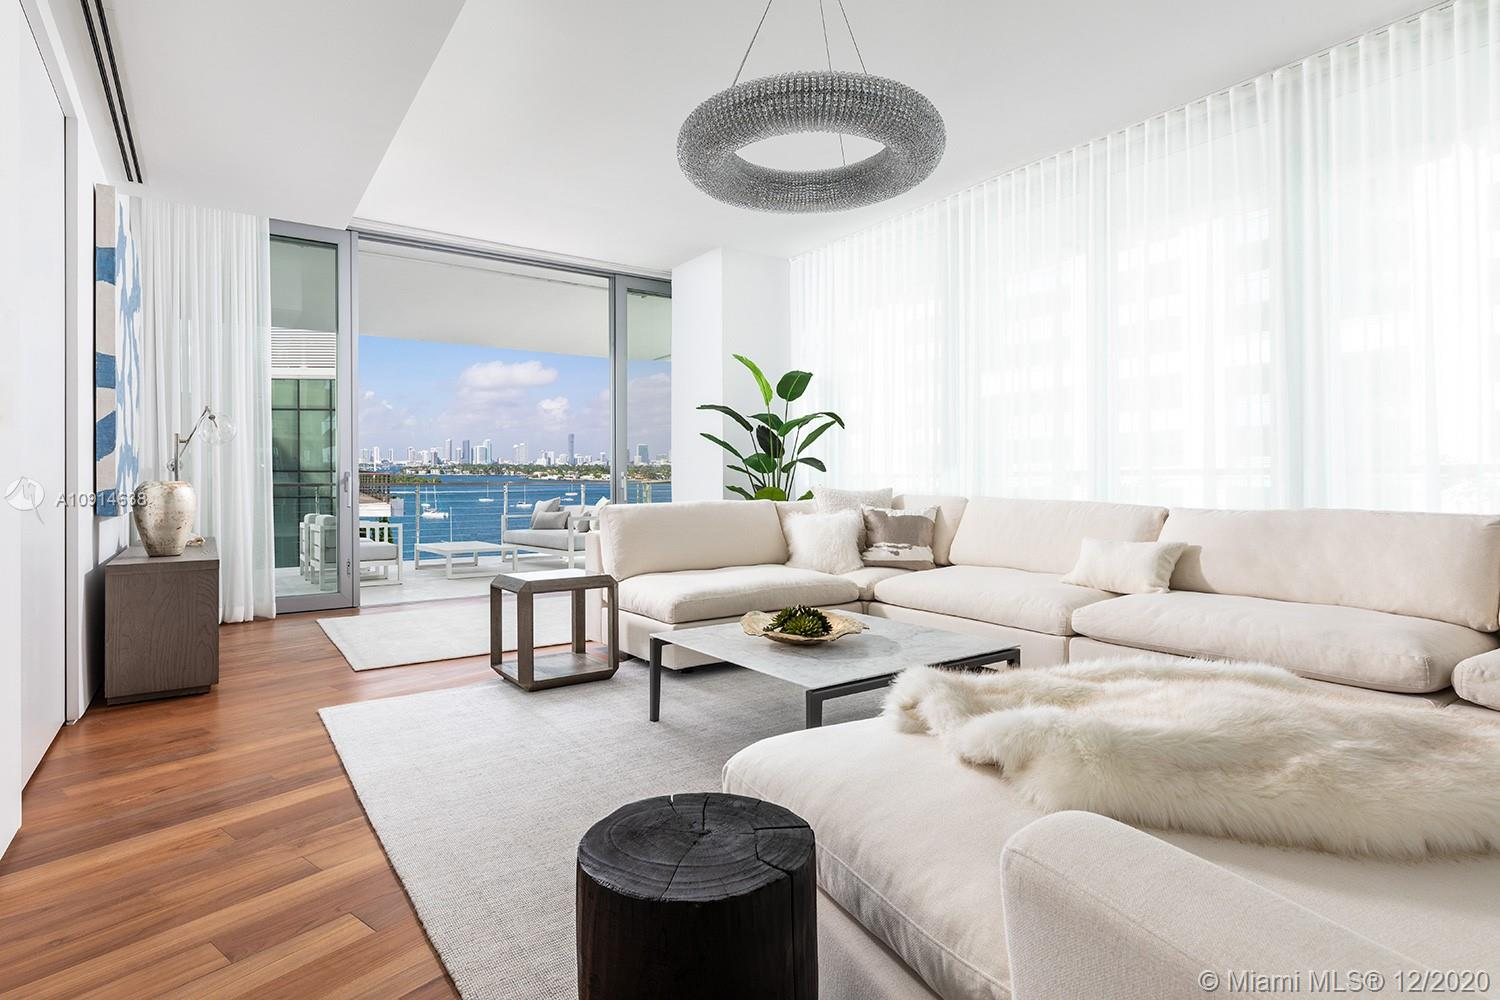 Composed of 59 individually designed residences around a glittering lagoon, Monad Terrace by Pritzker Winner, Jean Nouvel, provides brilliant light, private outdoor space, climbing gardens, unique sawtooth honeycomb facades & stunning sunset views of Biscayne Bay. Interiors are finished with marble bathrooms & kitchens, custom cabinetry & built-in features, designer fixtures, teak flooring throughout & private elevators. Estimated delivery in 2020. Images are renderings or Model Photography.